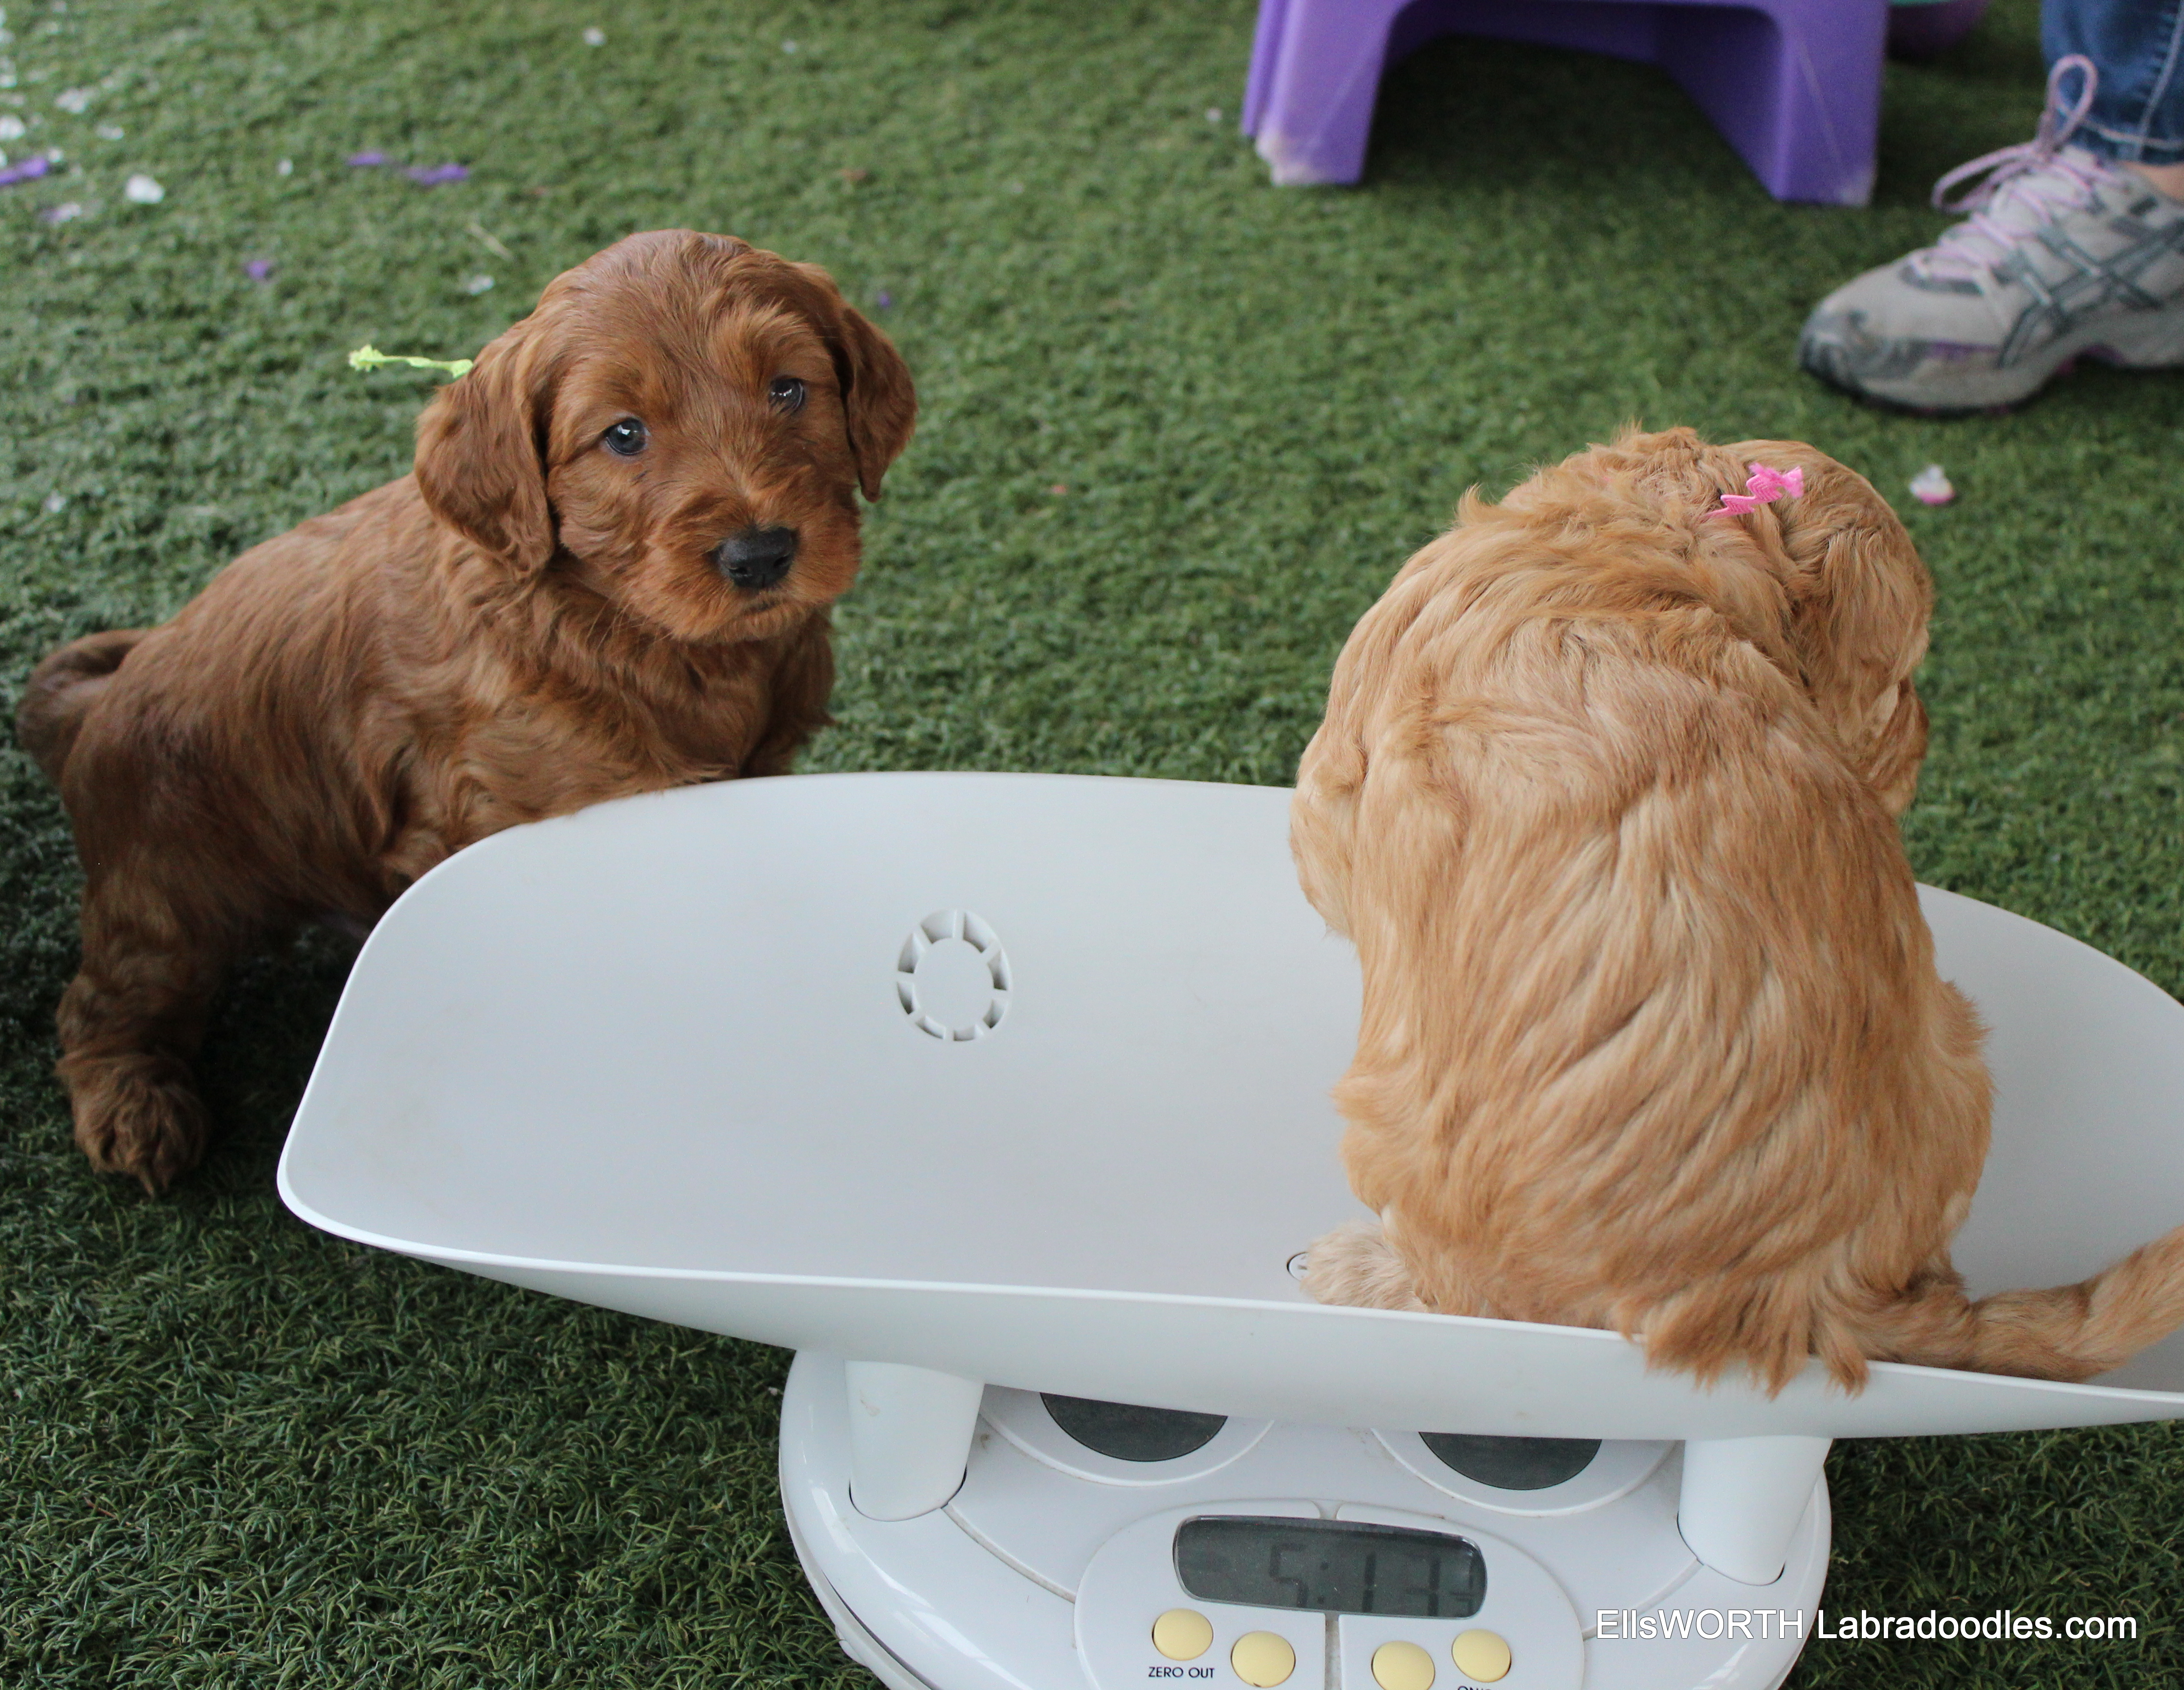 Watching his sister get weighed